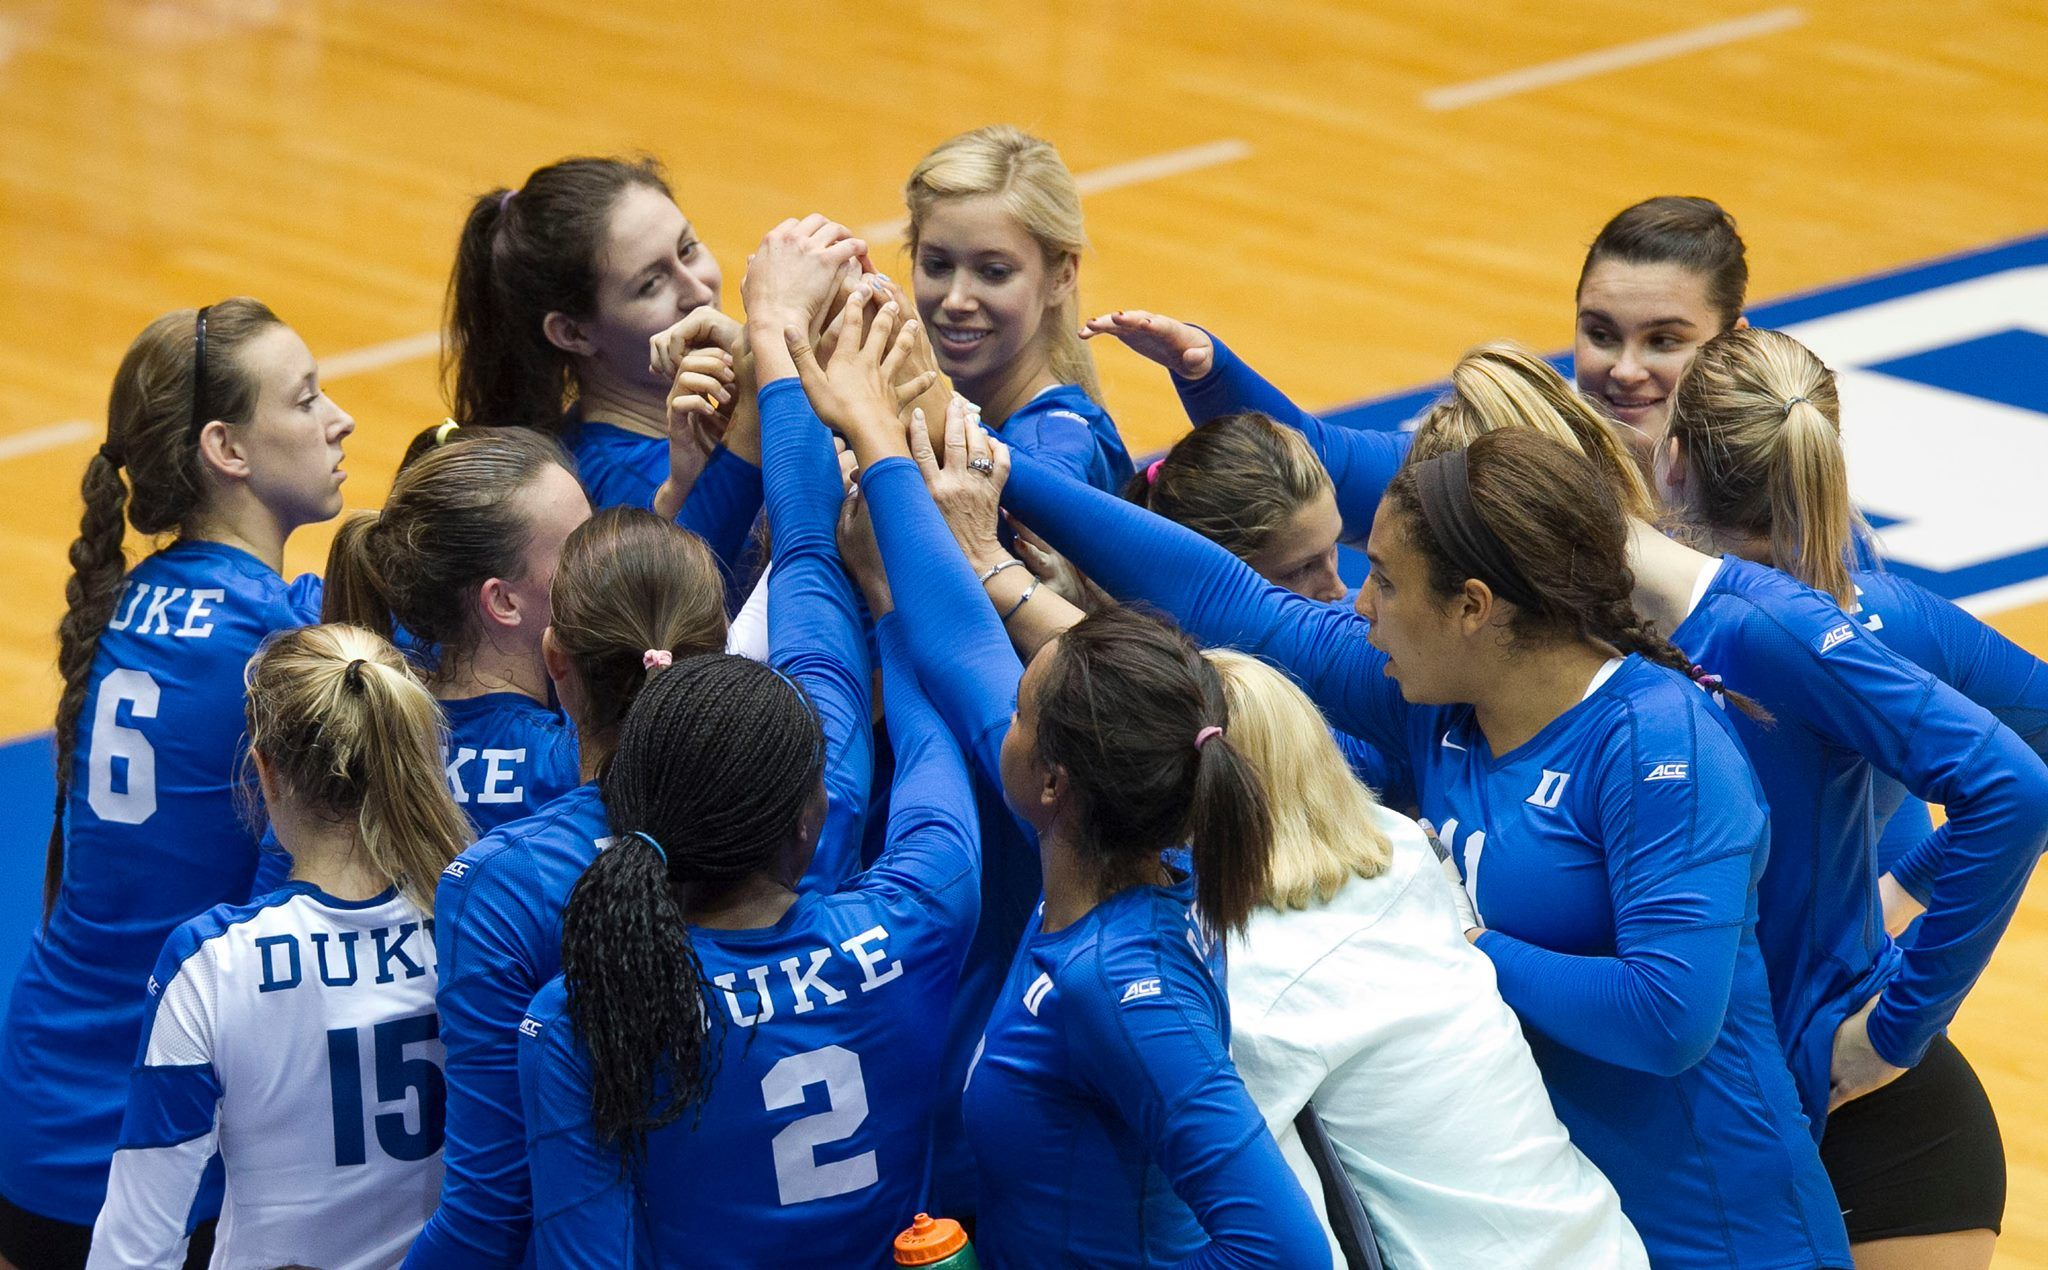 Duke Volleyball Concluded Its Home Invitational With A Sweep Of Furman Sunday Goduke Photo Credit Duke Photography Duke Photography Duke Duke University